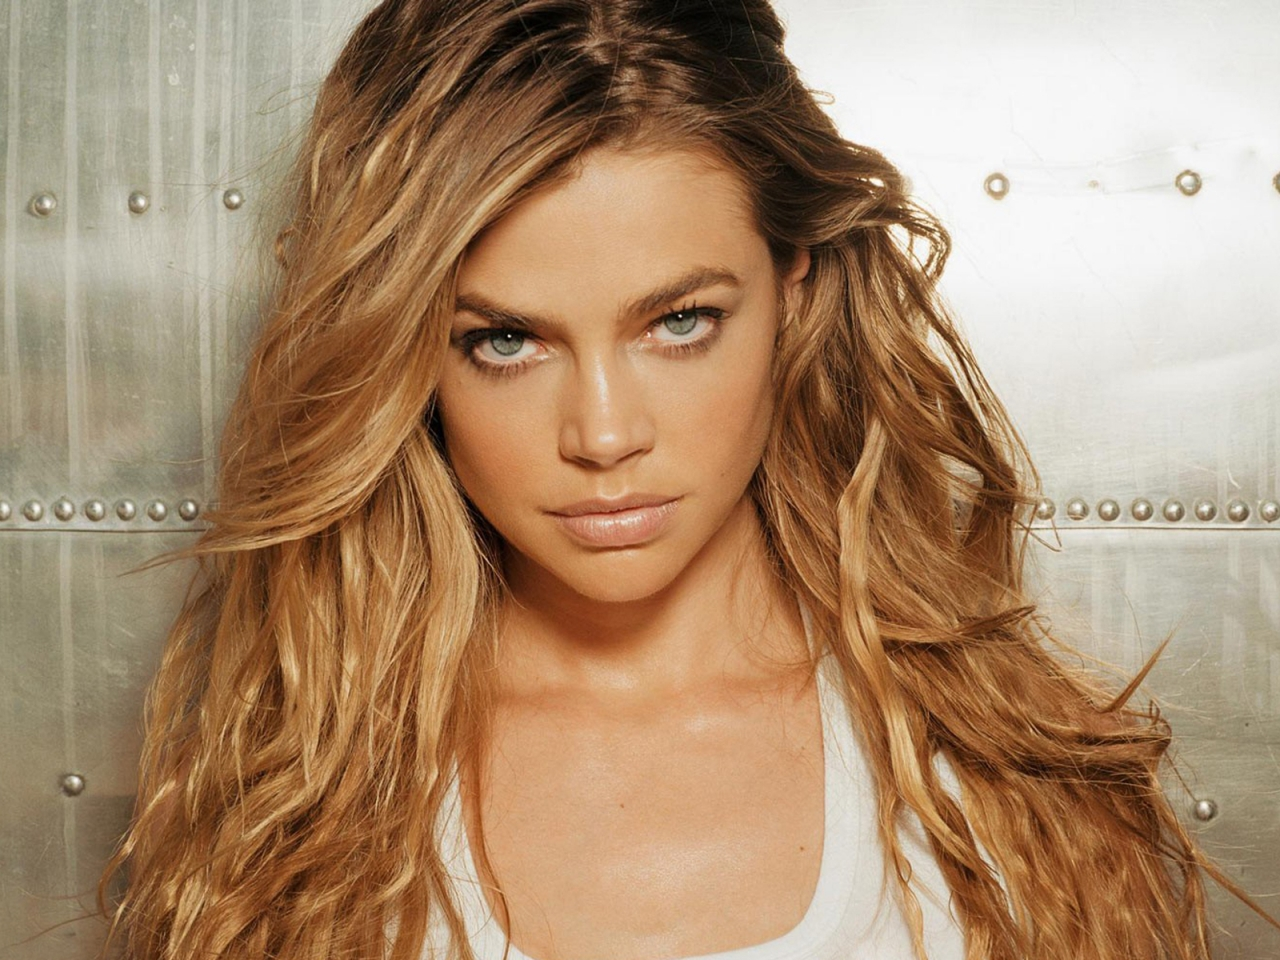 Denise Richards Serious for 1280 x 960 resolution